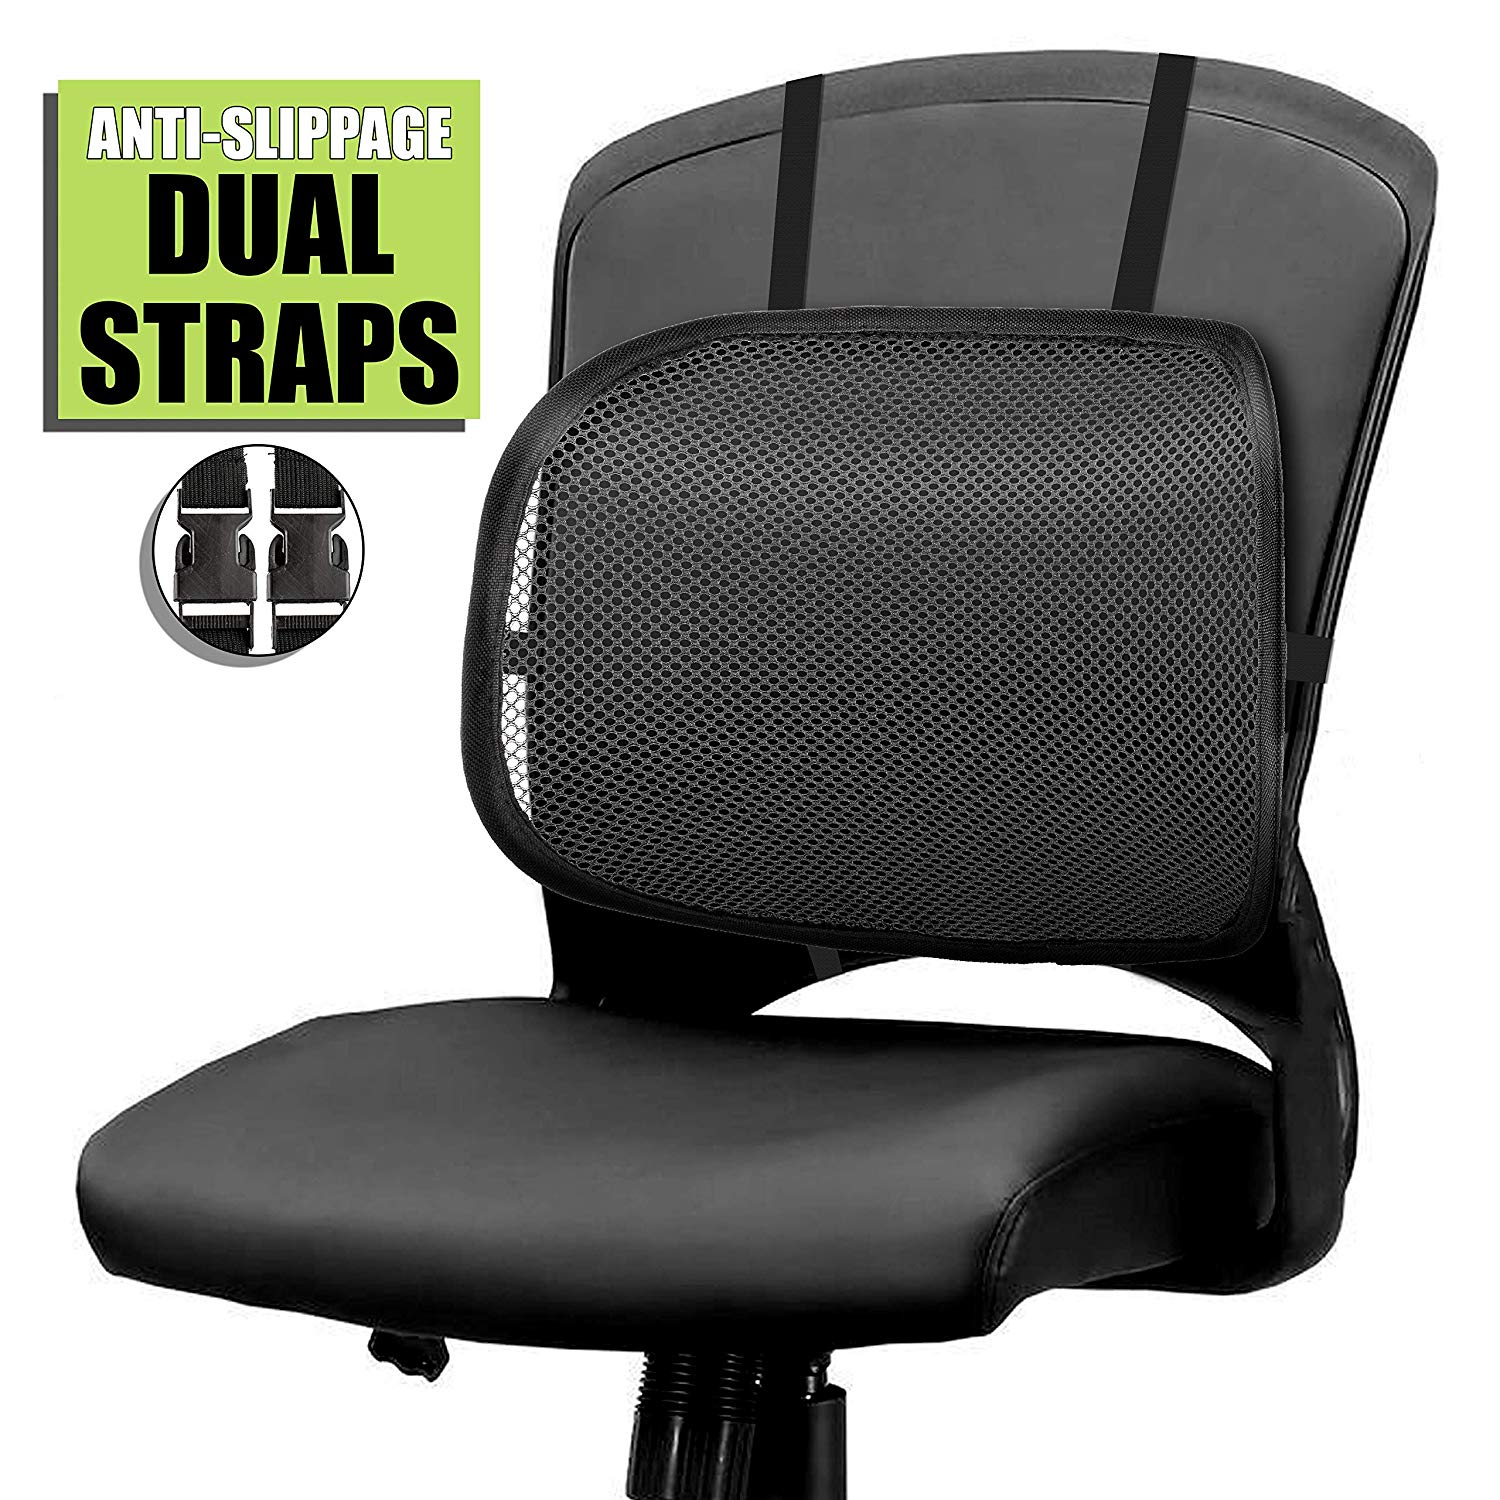 Chair Support